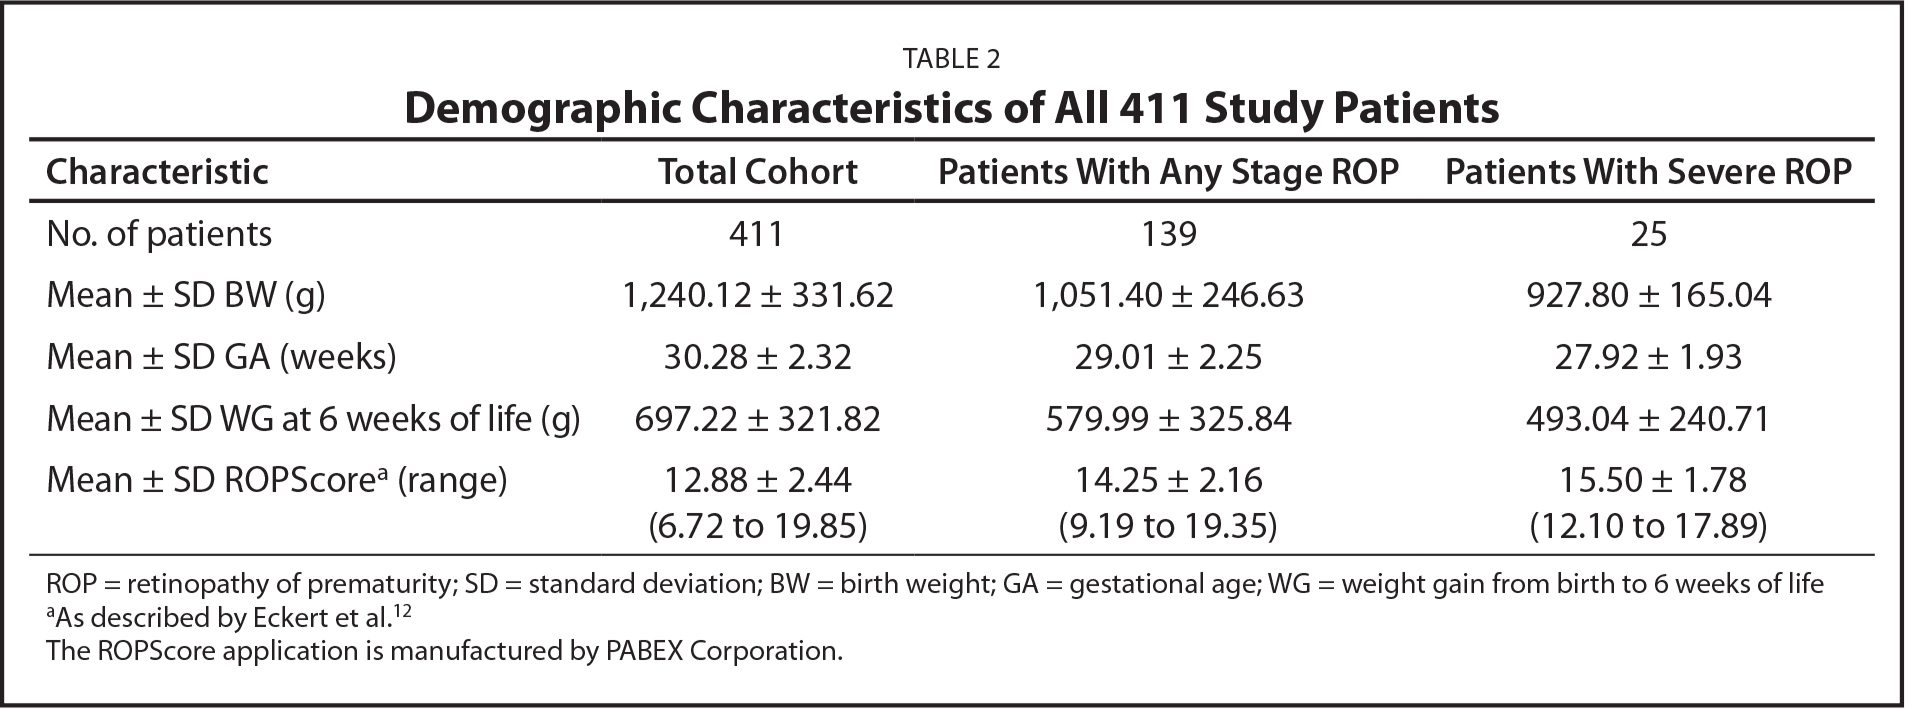 Demographic Characteristics of All 411 Study Patients